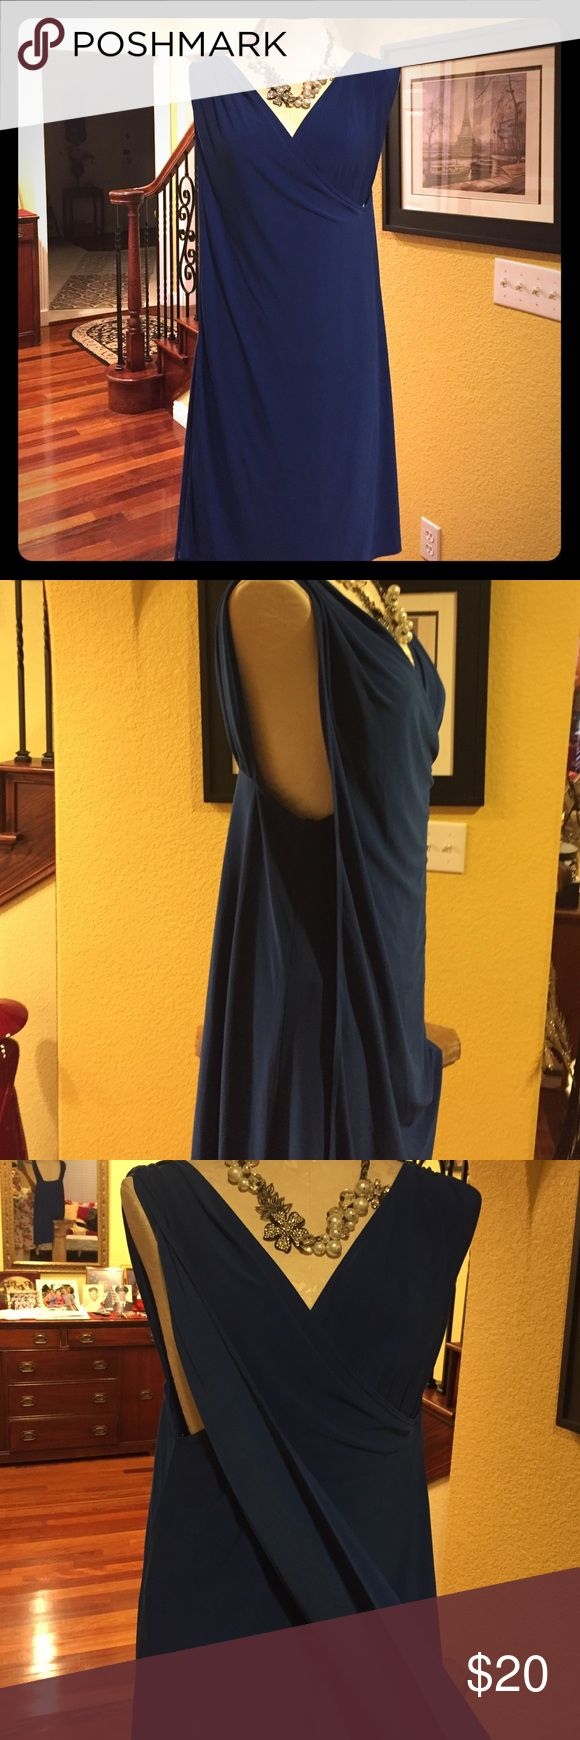 Royal blue brand new dress Beautiful no iron everyday dress. False wrap around. Short sleeve. essentials by ABS Dresses Midi